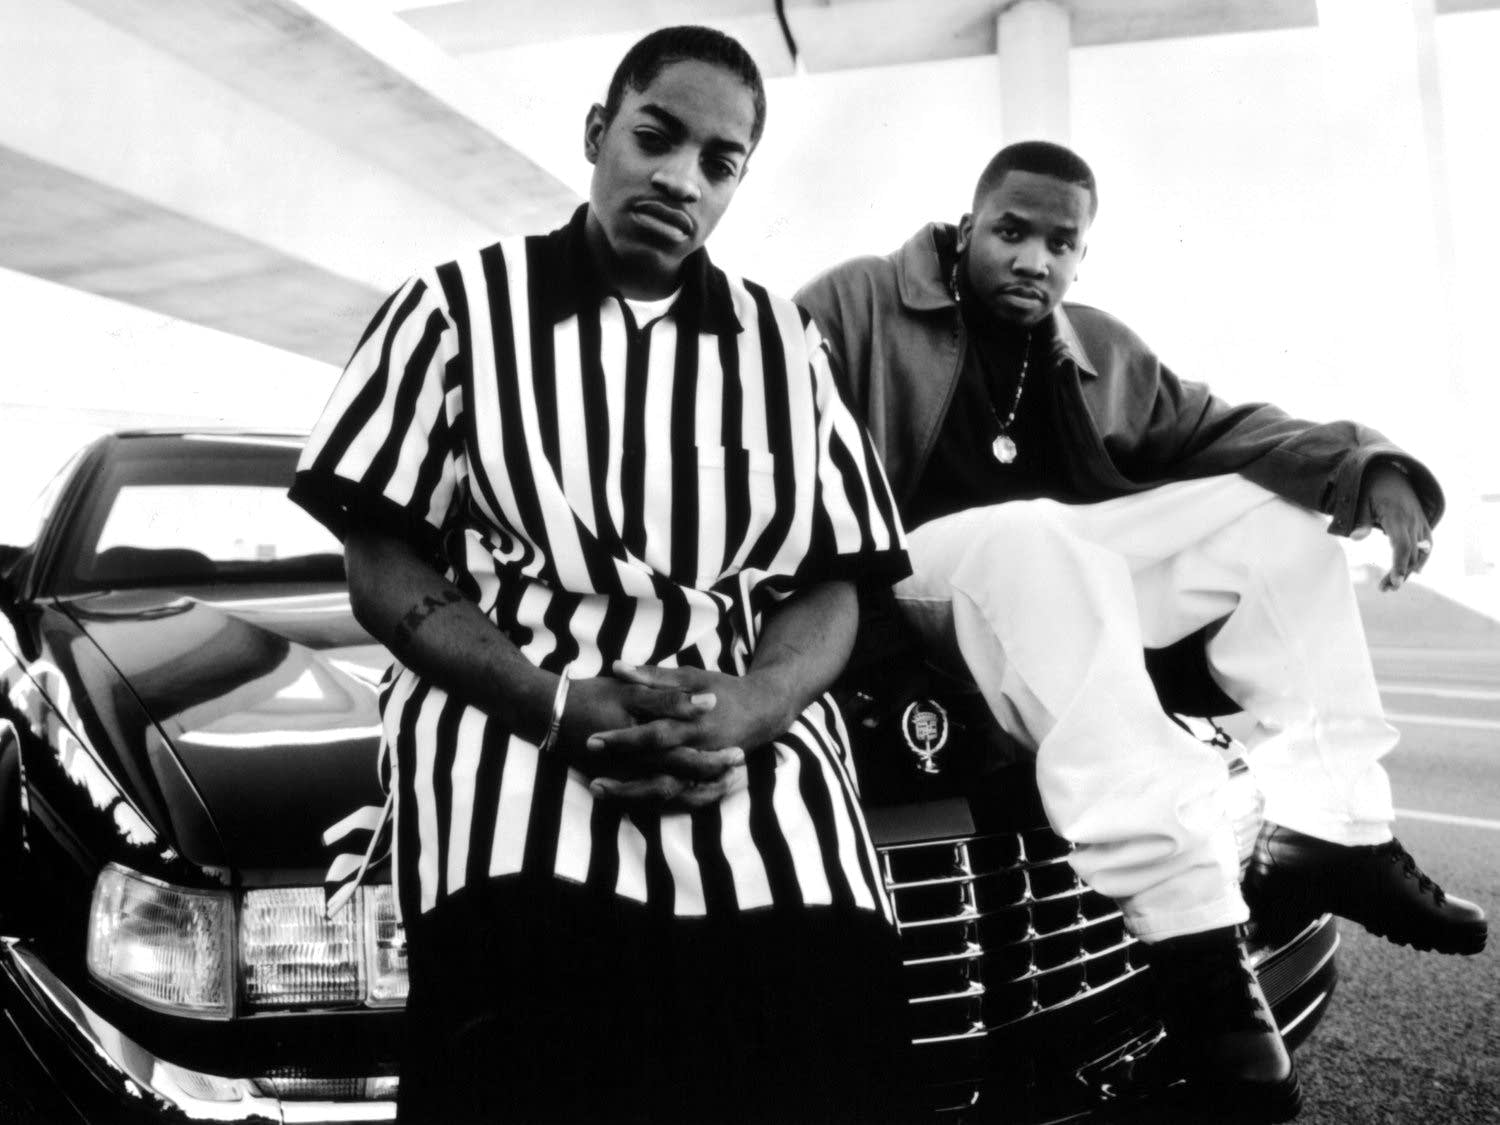 Outkast in the early days